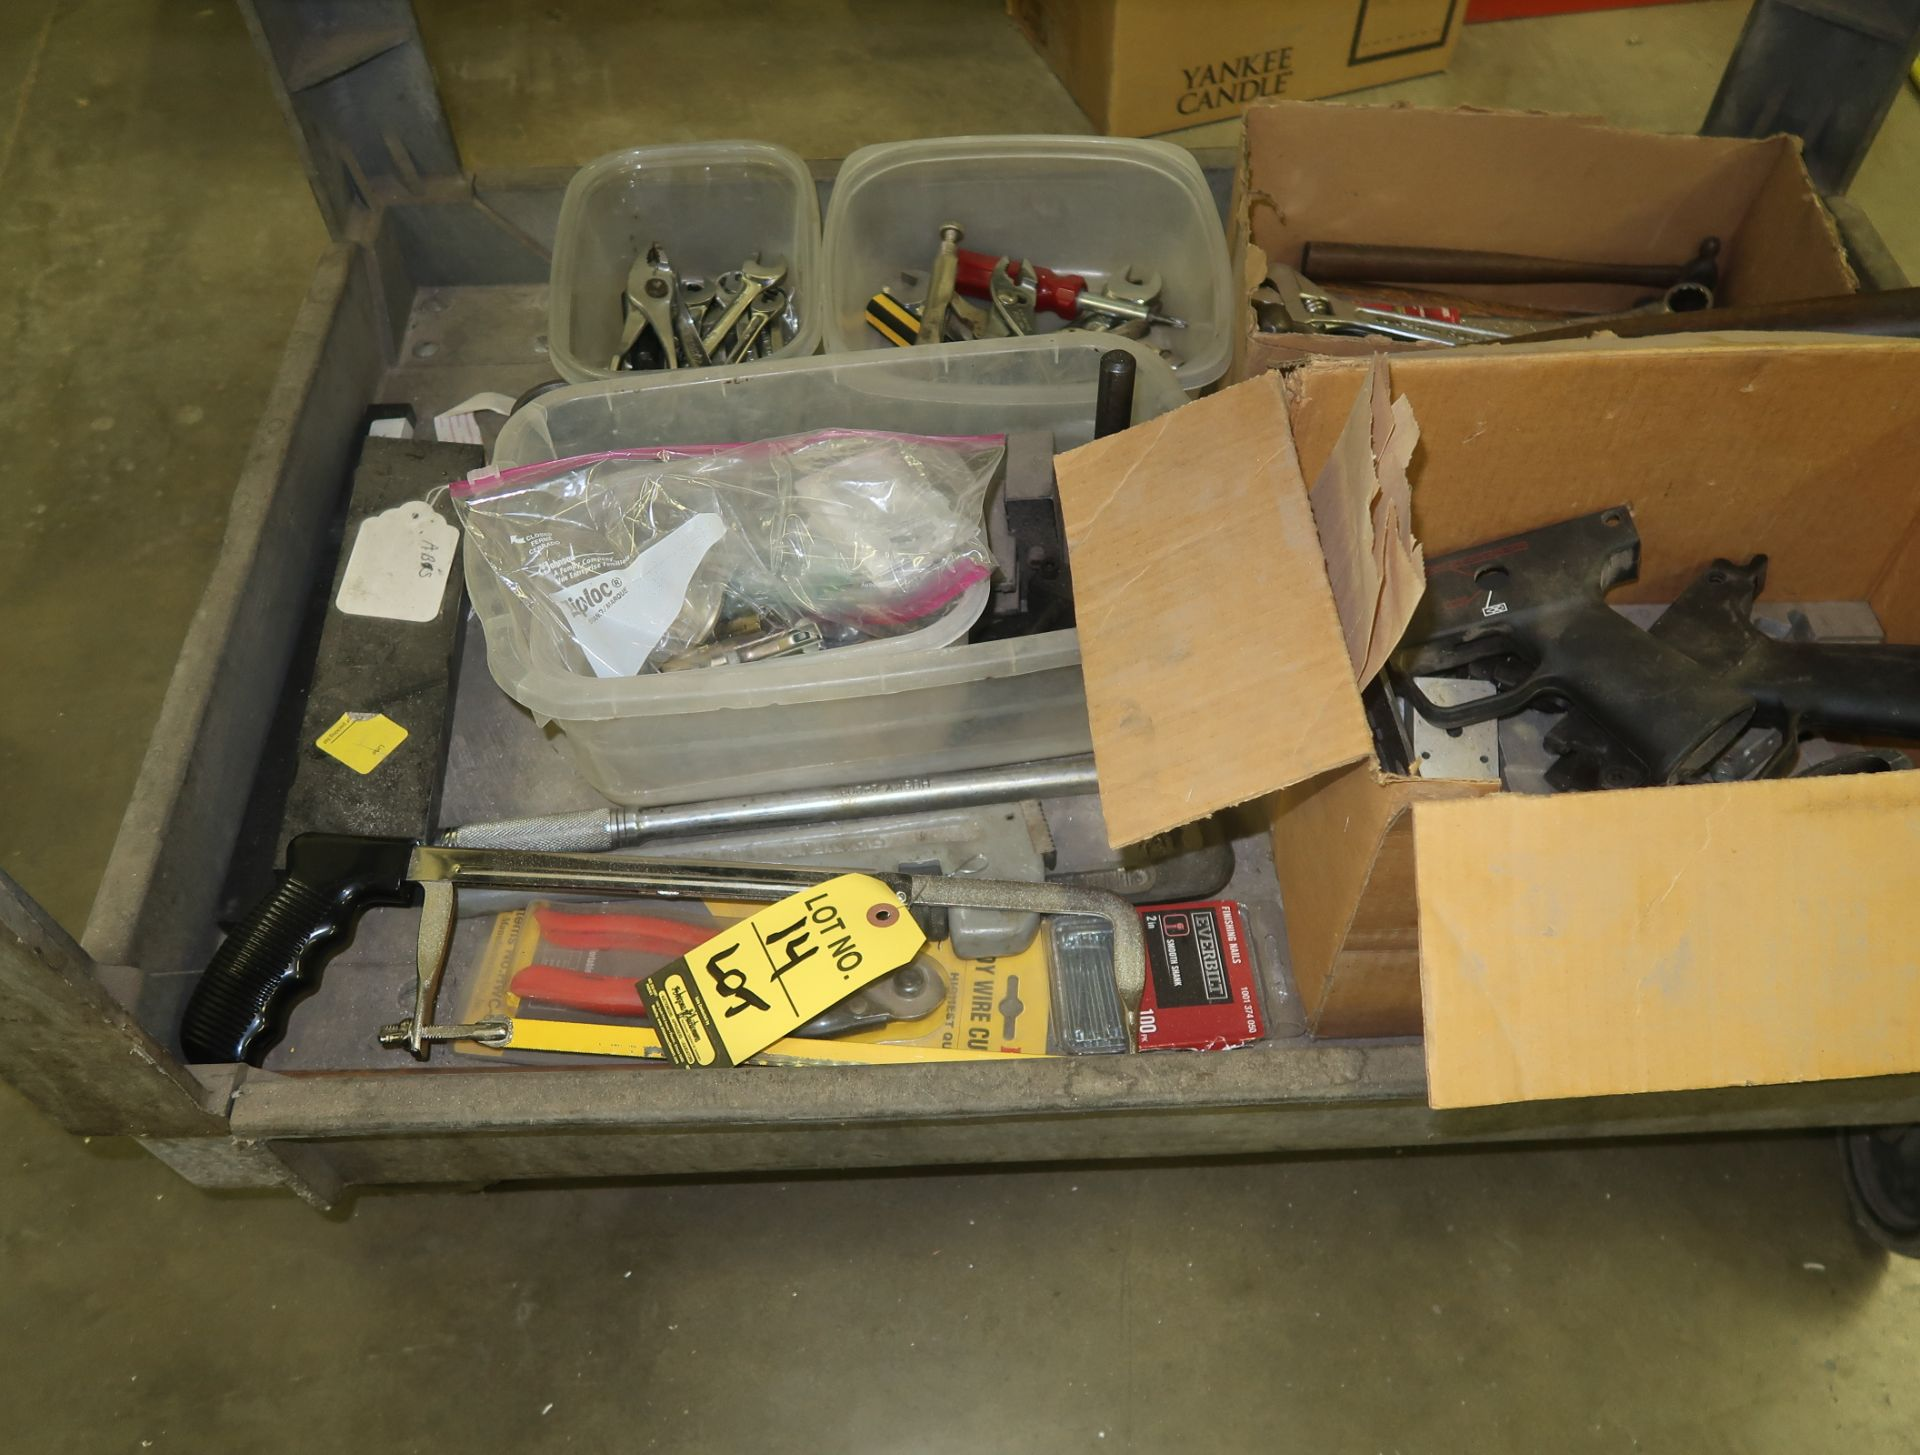 Lot 14 - LOT CONTENTS ON BOTTOM OF CART, WRENCHES, SAWS, ETC.